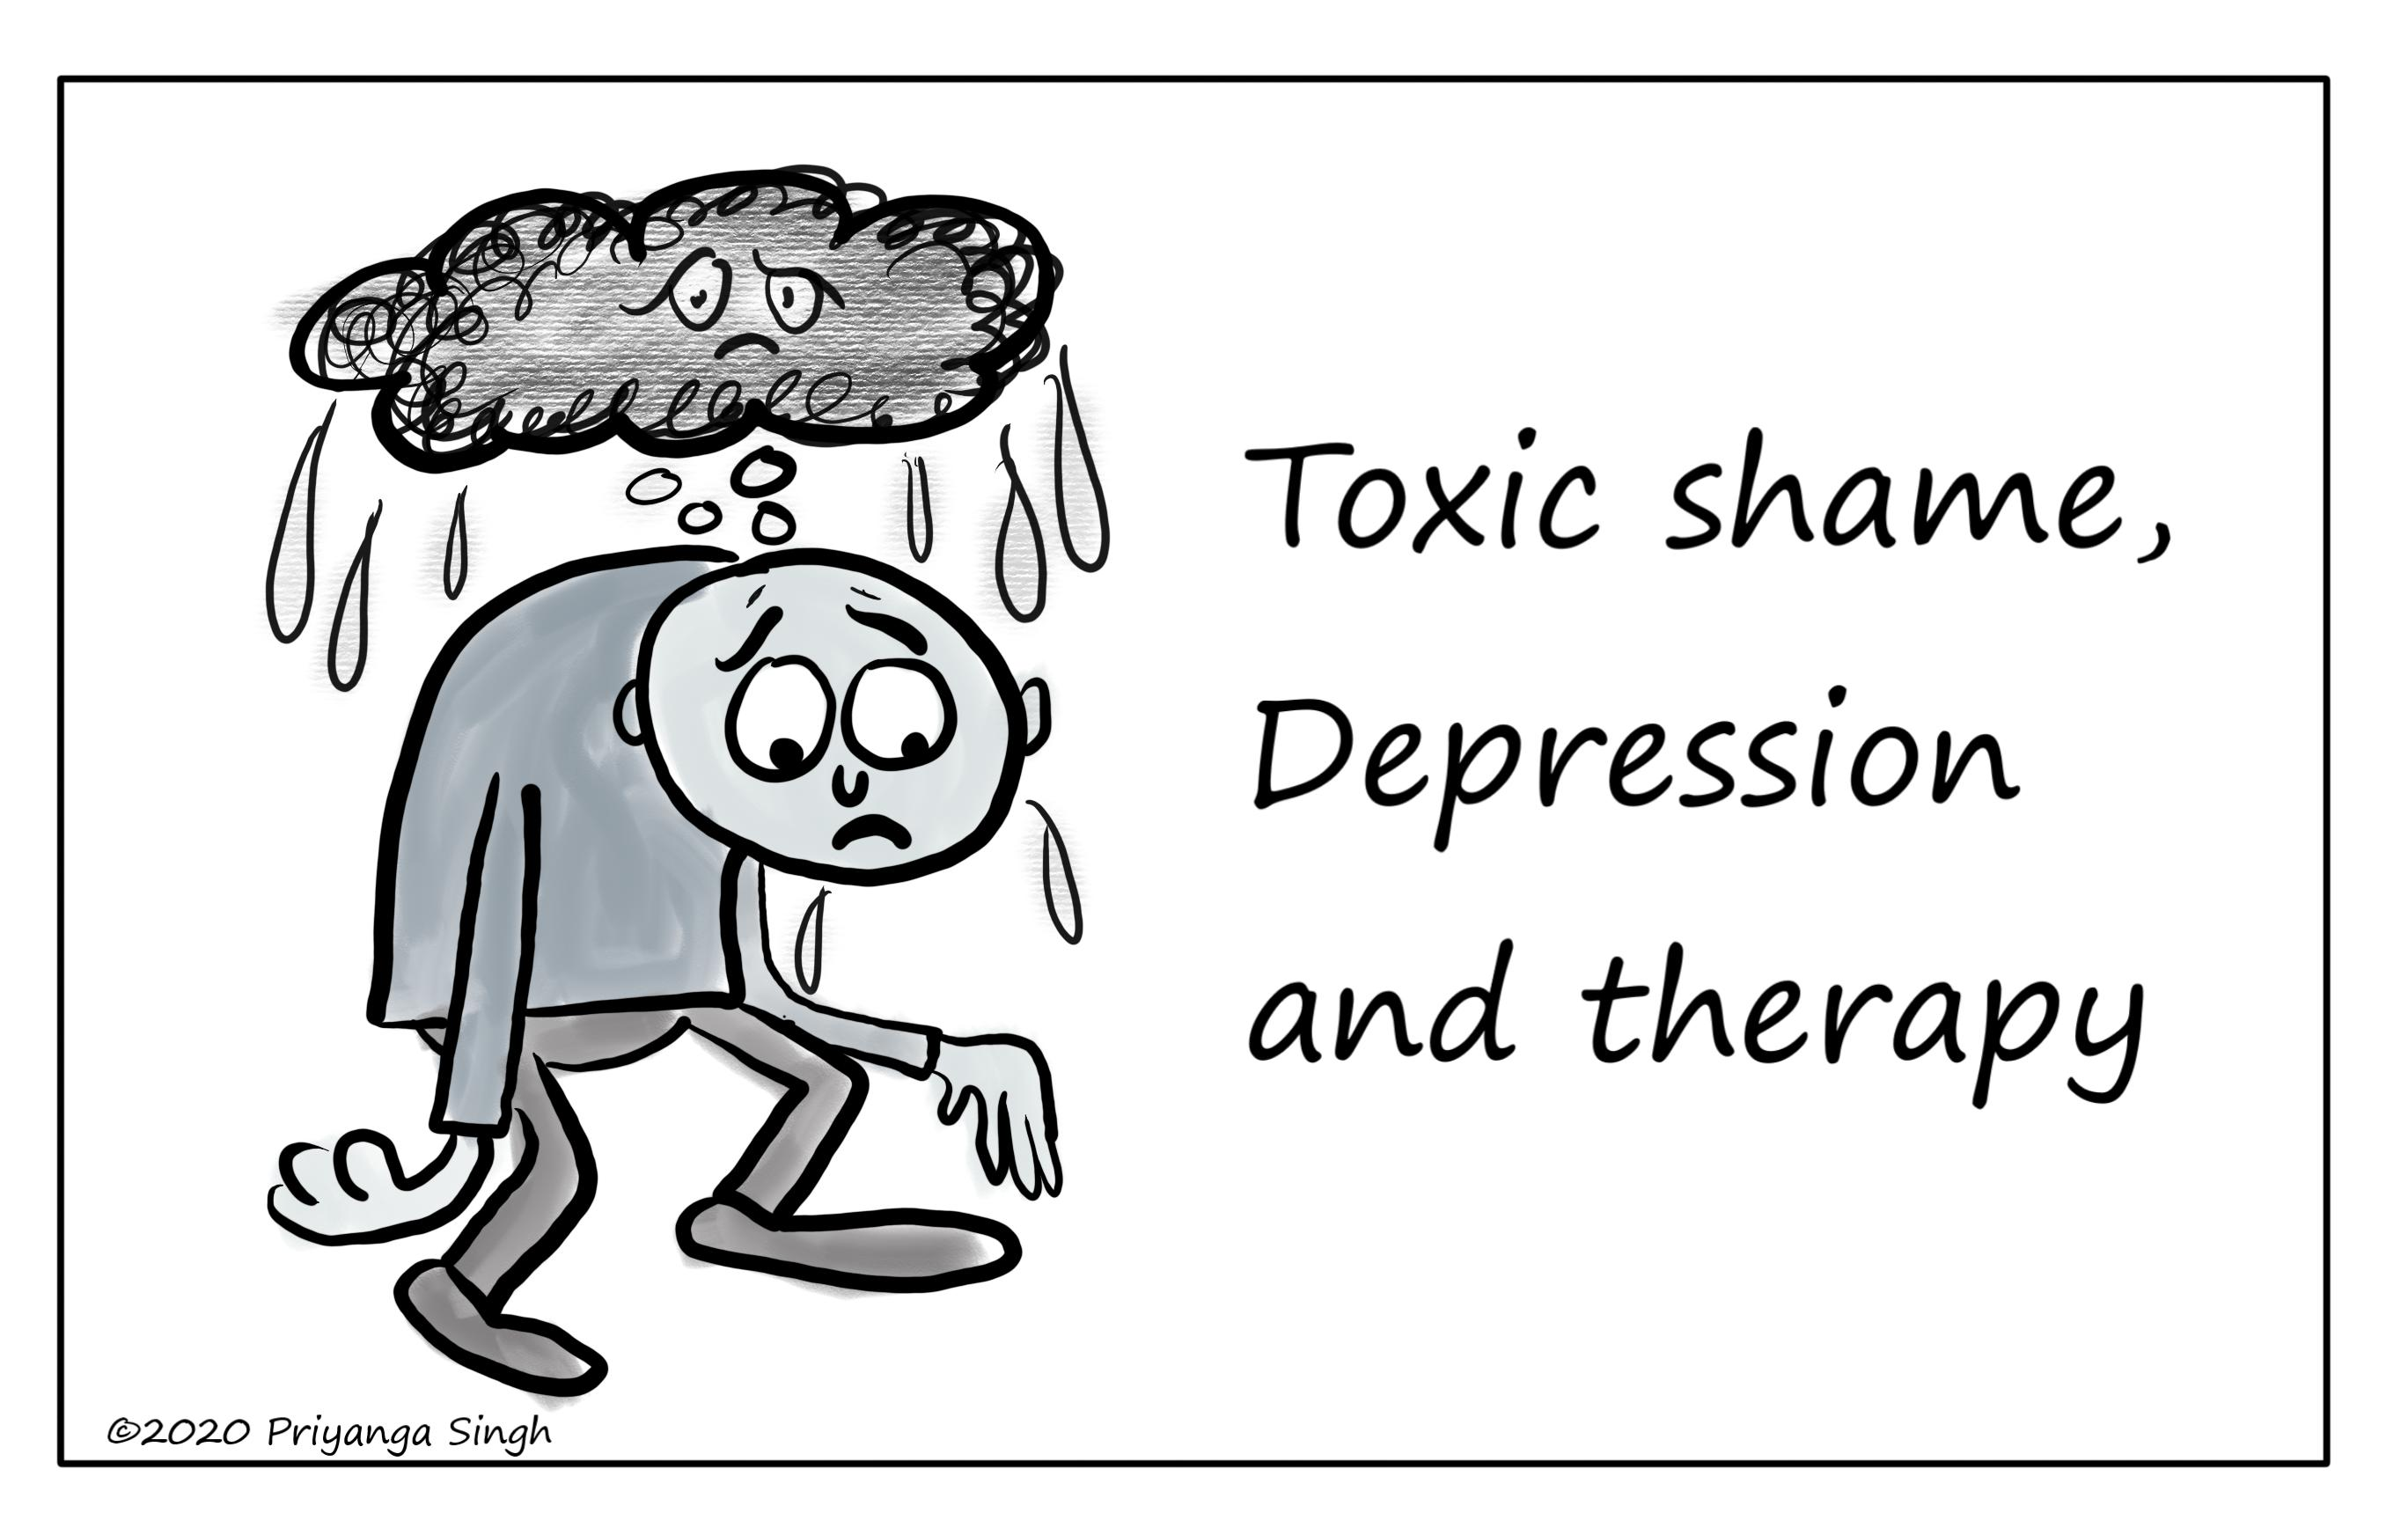 toxic shame and therapy jpg.jpg